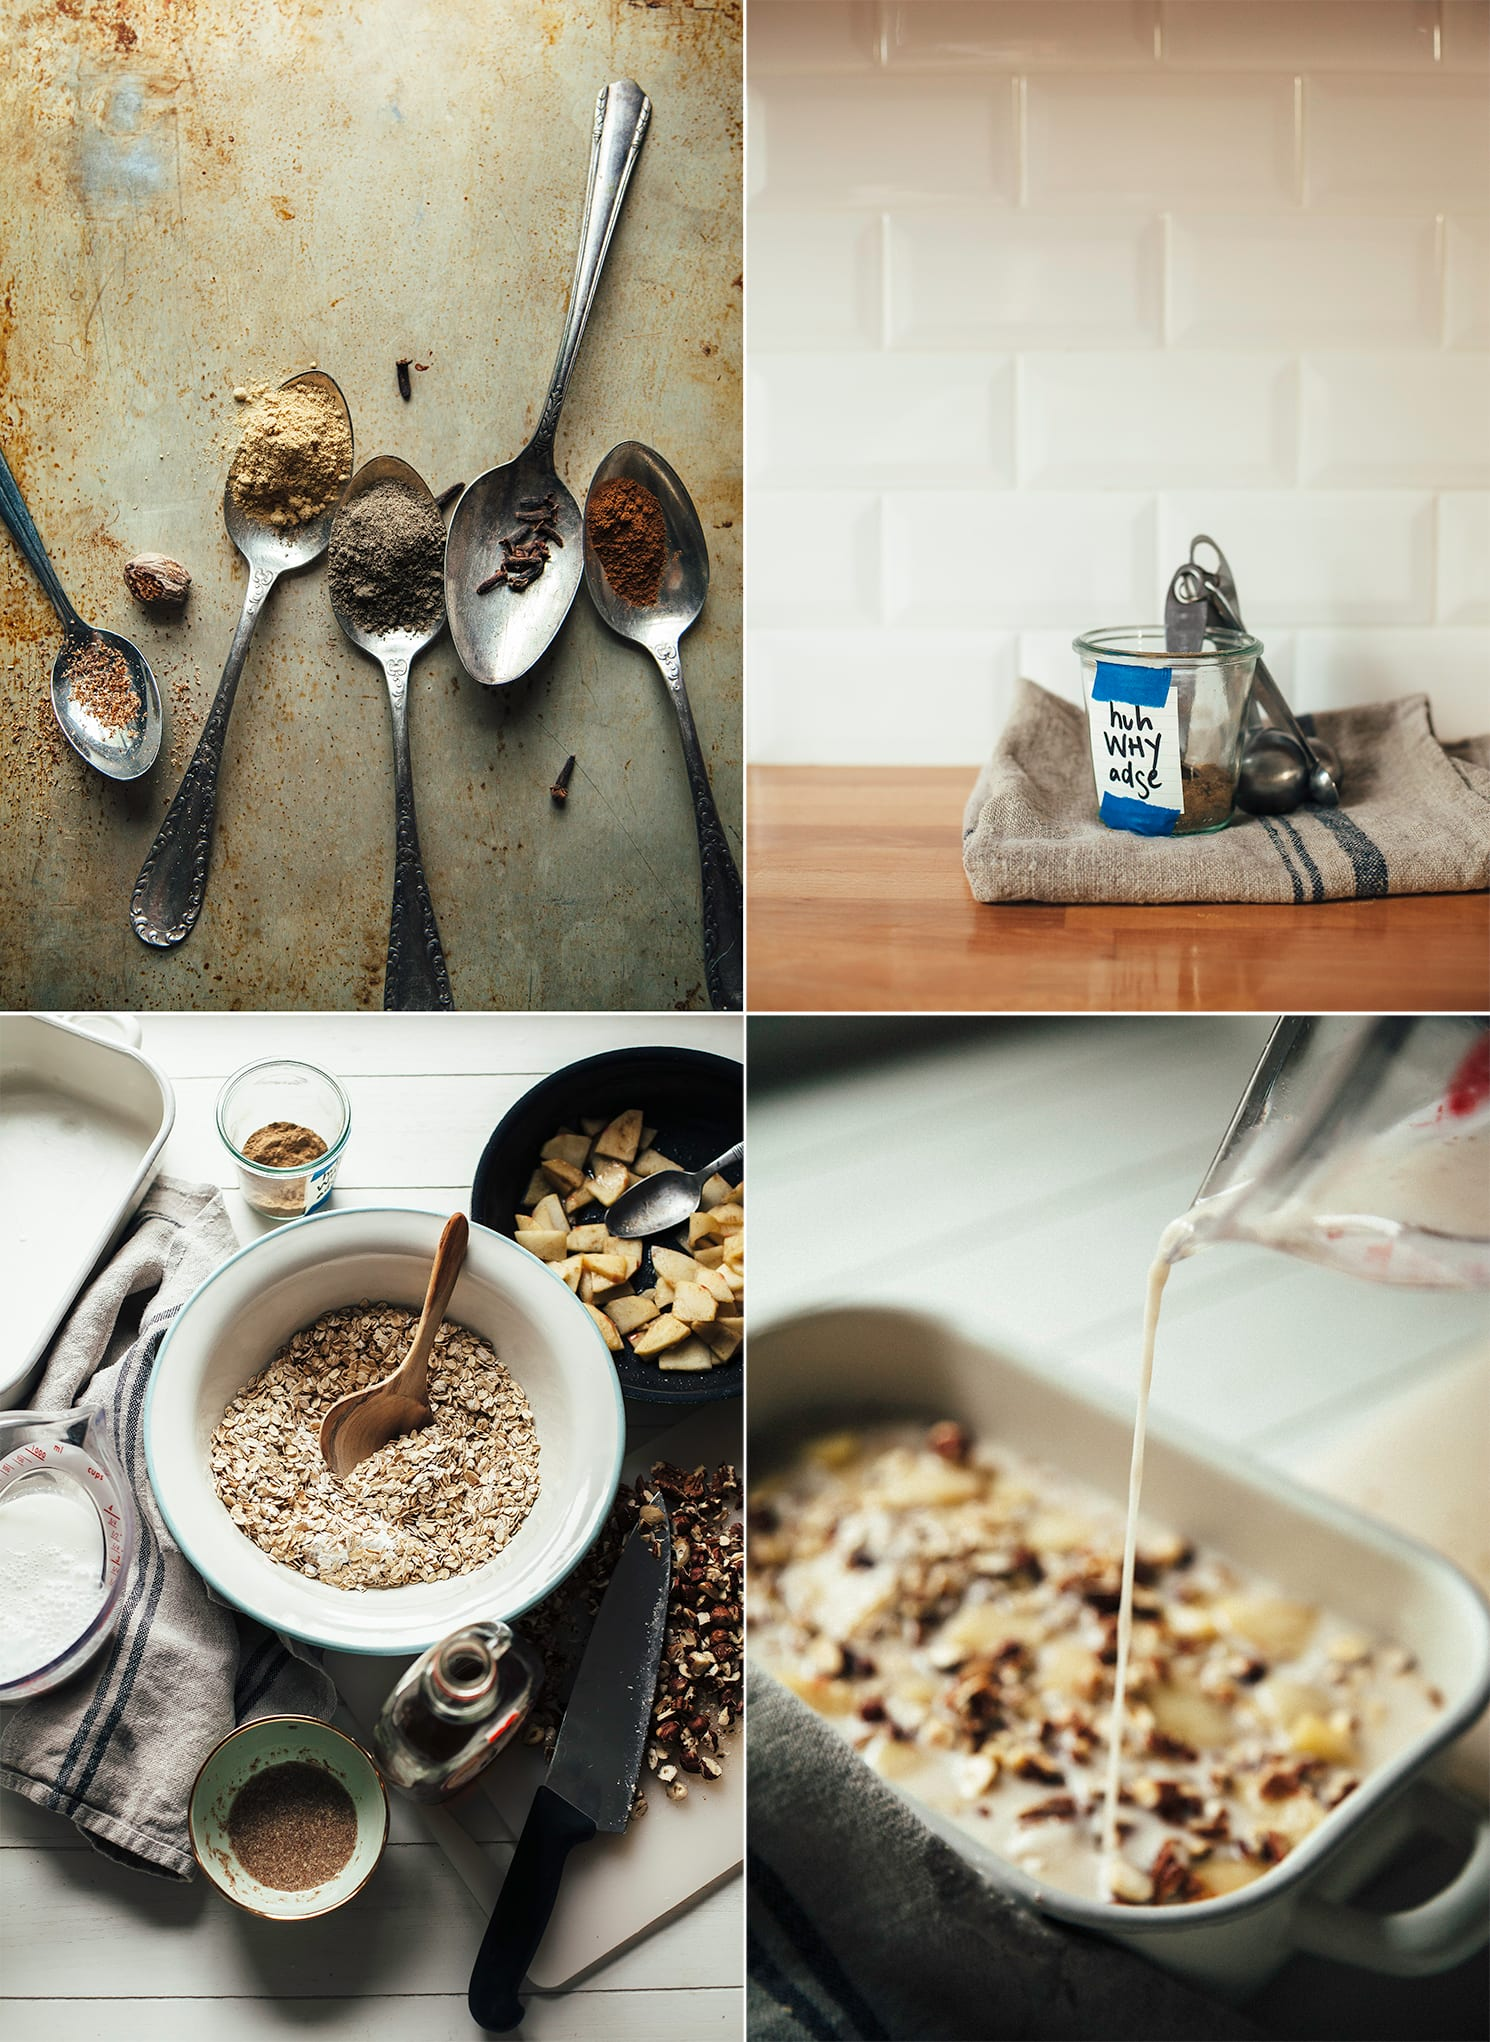 4 images show: spoons with ground spices, a jar of hawaij spice blend, an overhead shot of baked oatmeal ingredients, and non-dairy milk being poured into a baking dish with oatmeal and nuts inside.